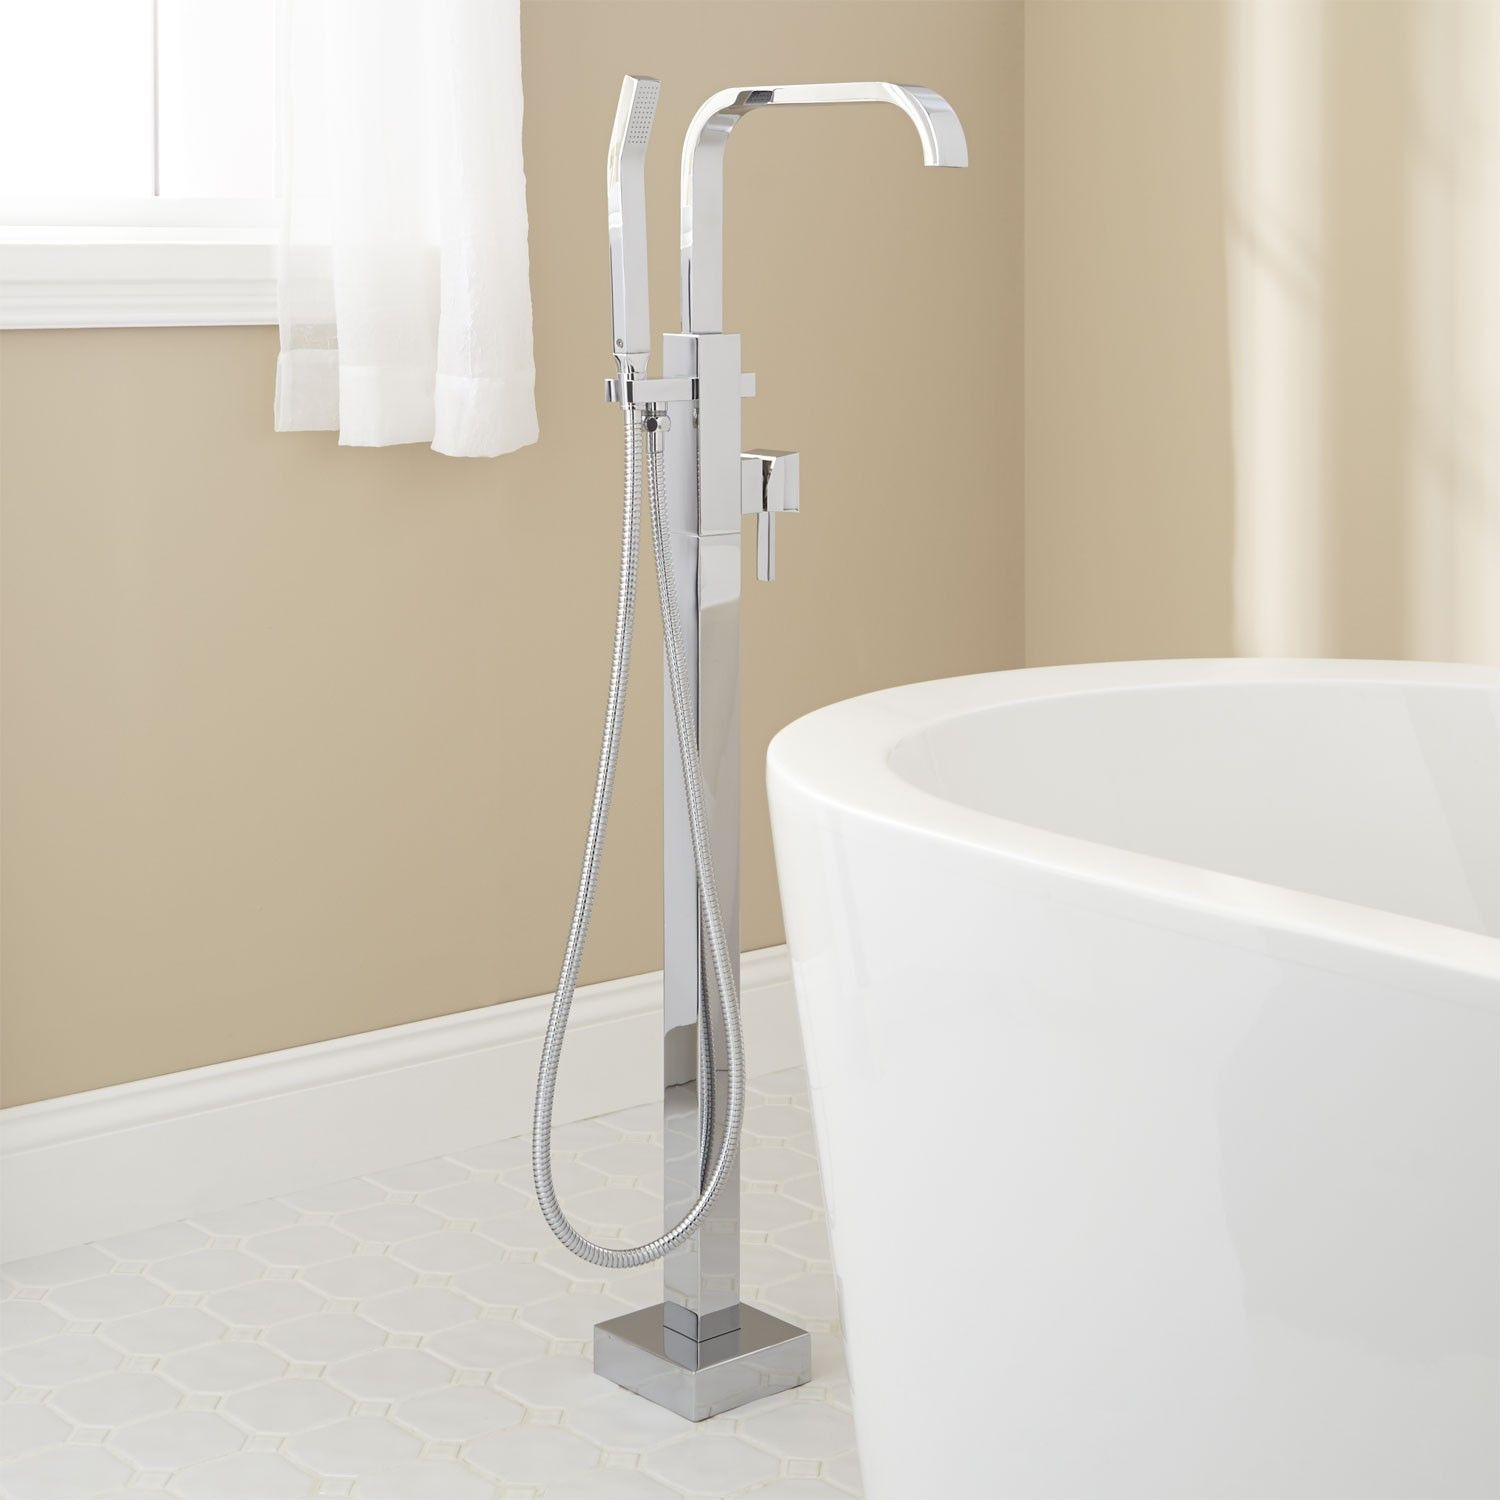 Ersa Freestanding Tub Faucet Tub Faucets Bathroom With Images